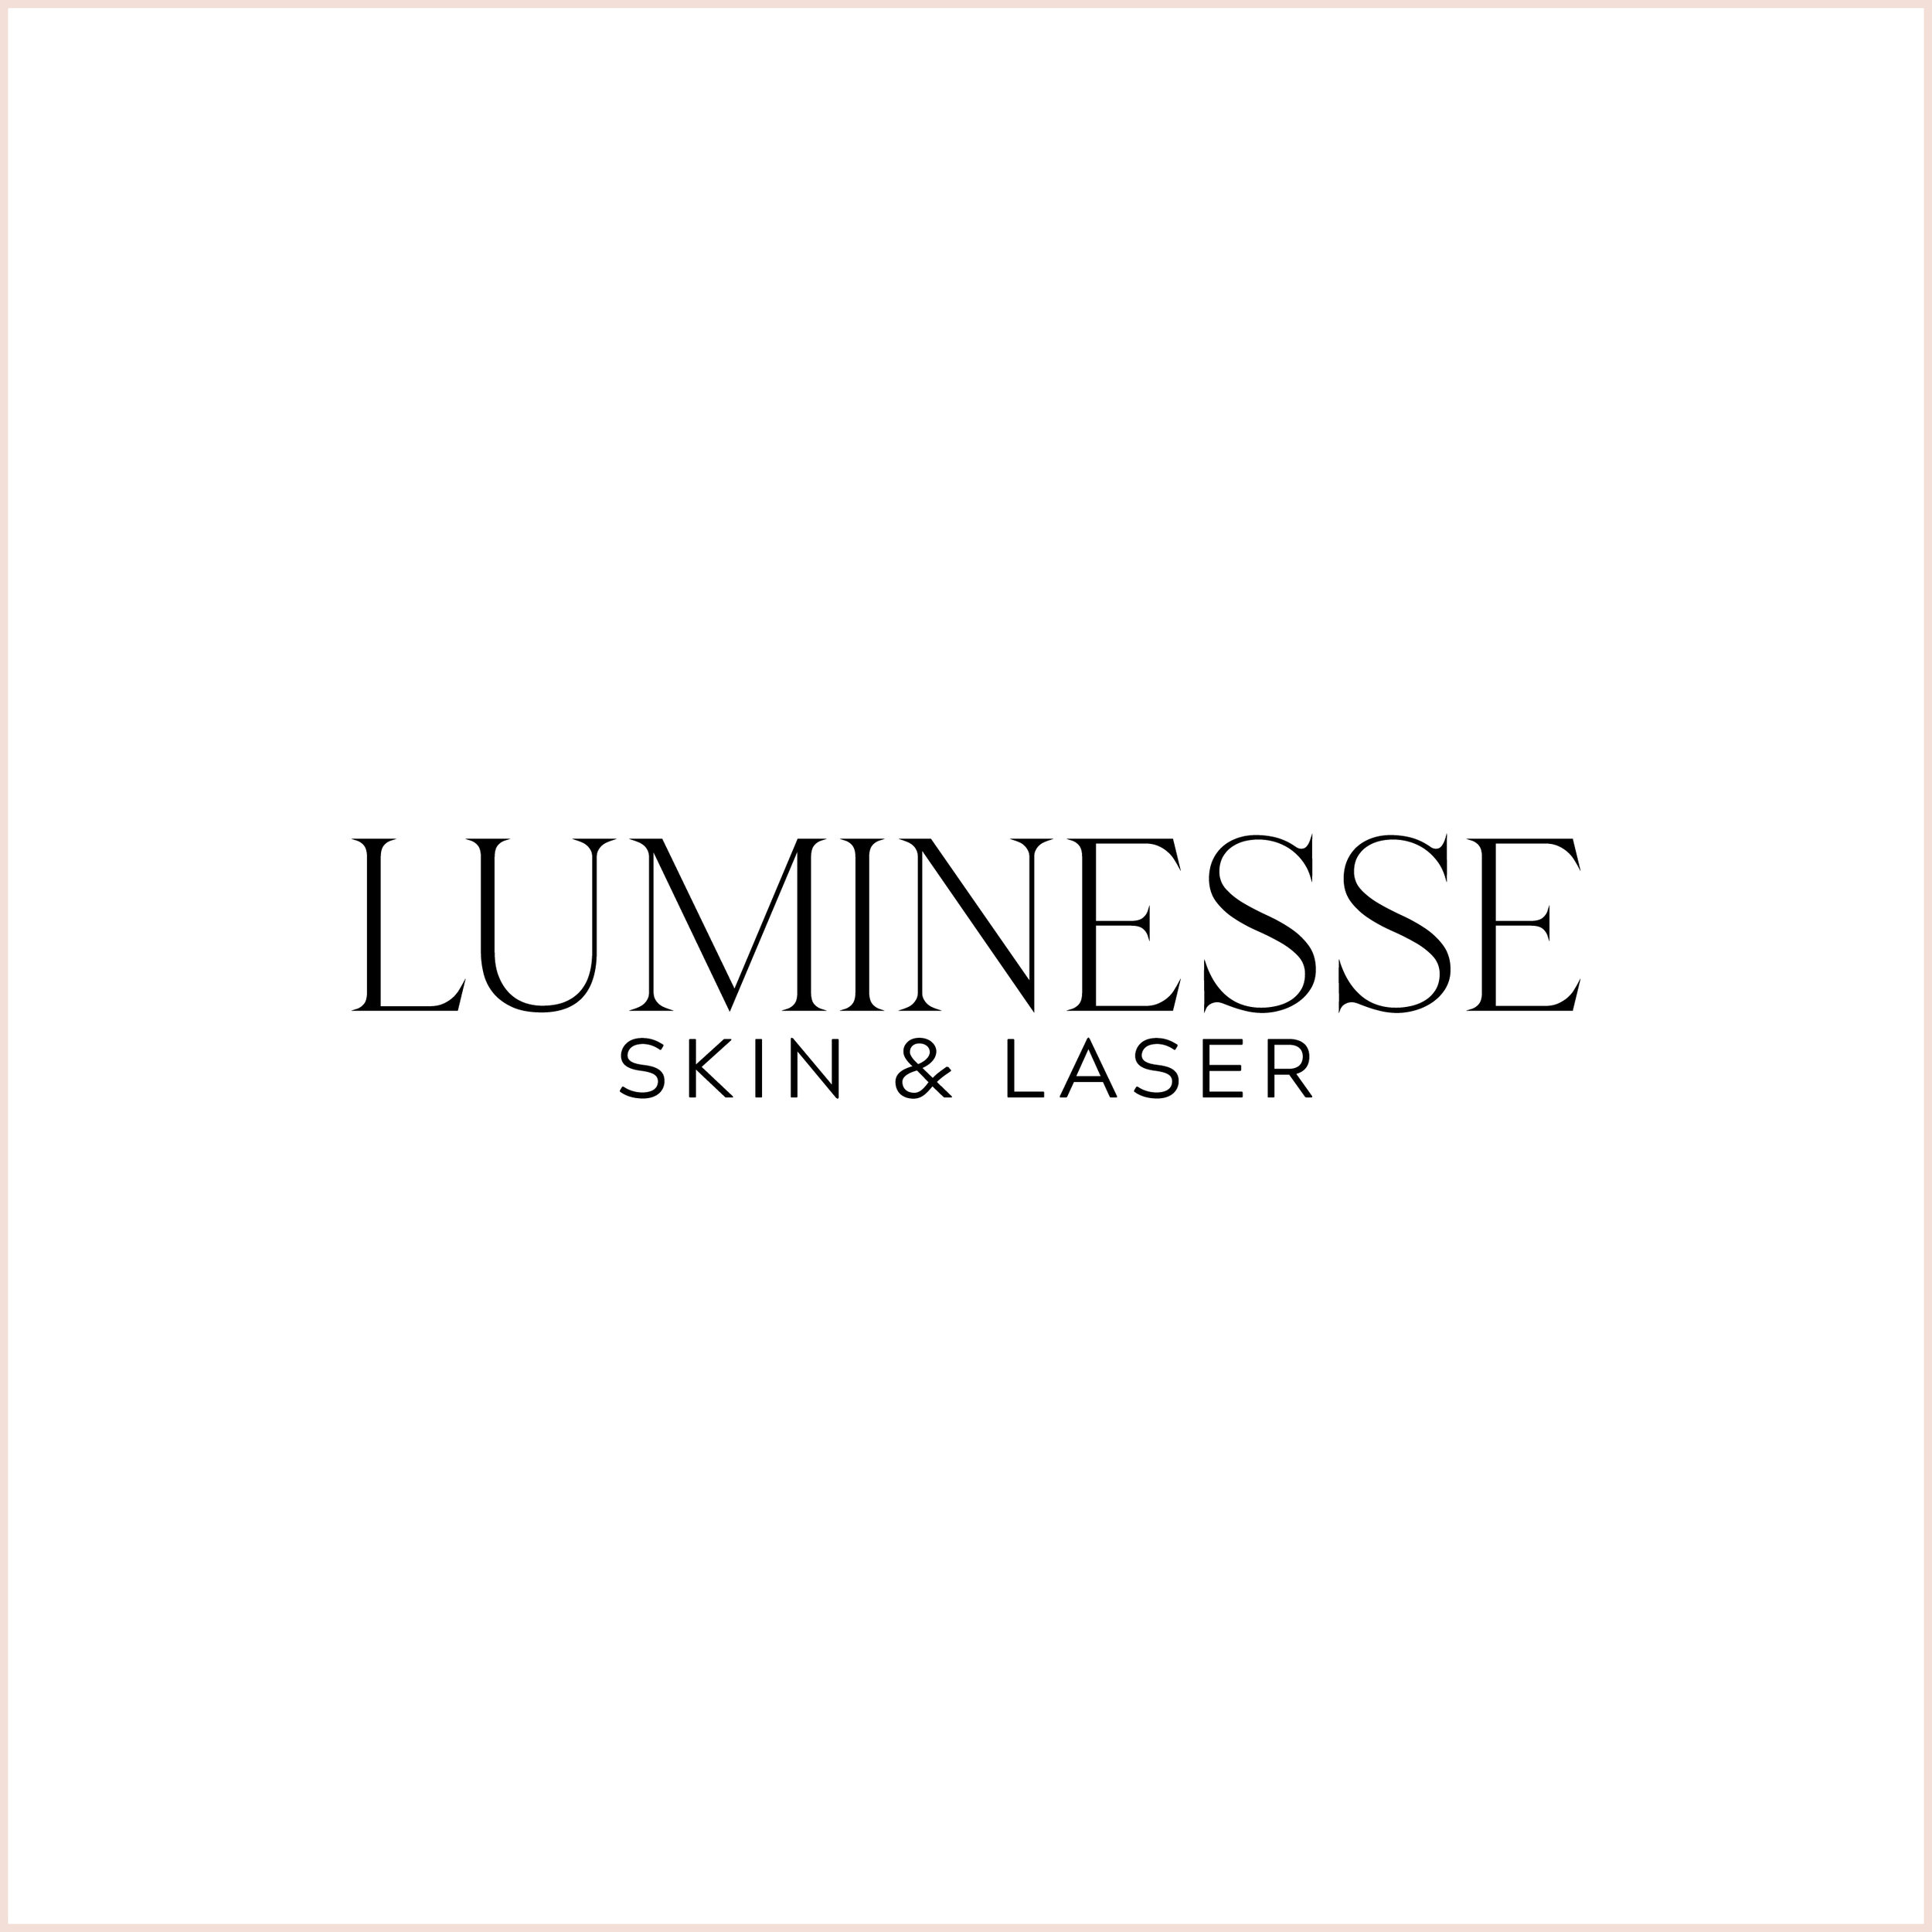 16-luminesse.jpg